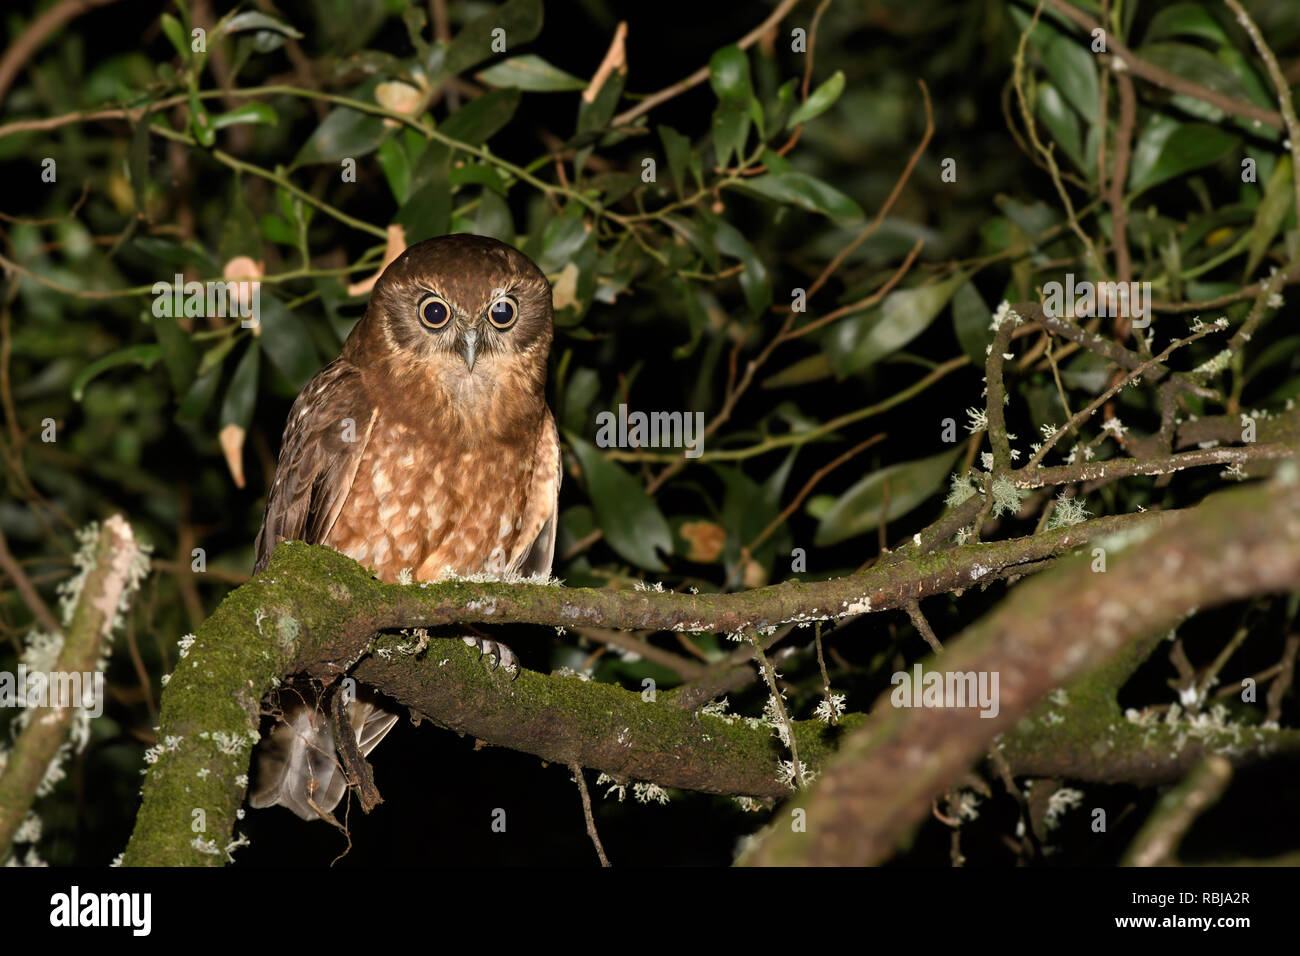 Boobook Owl perched and alert - Stock Image